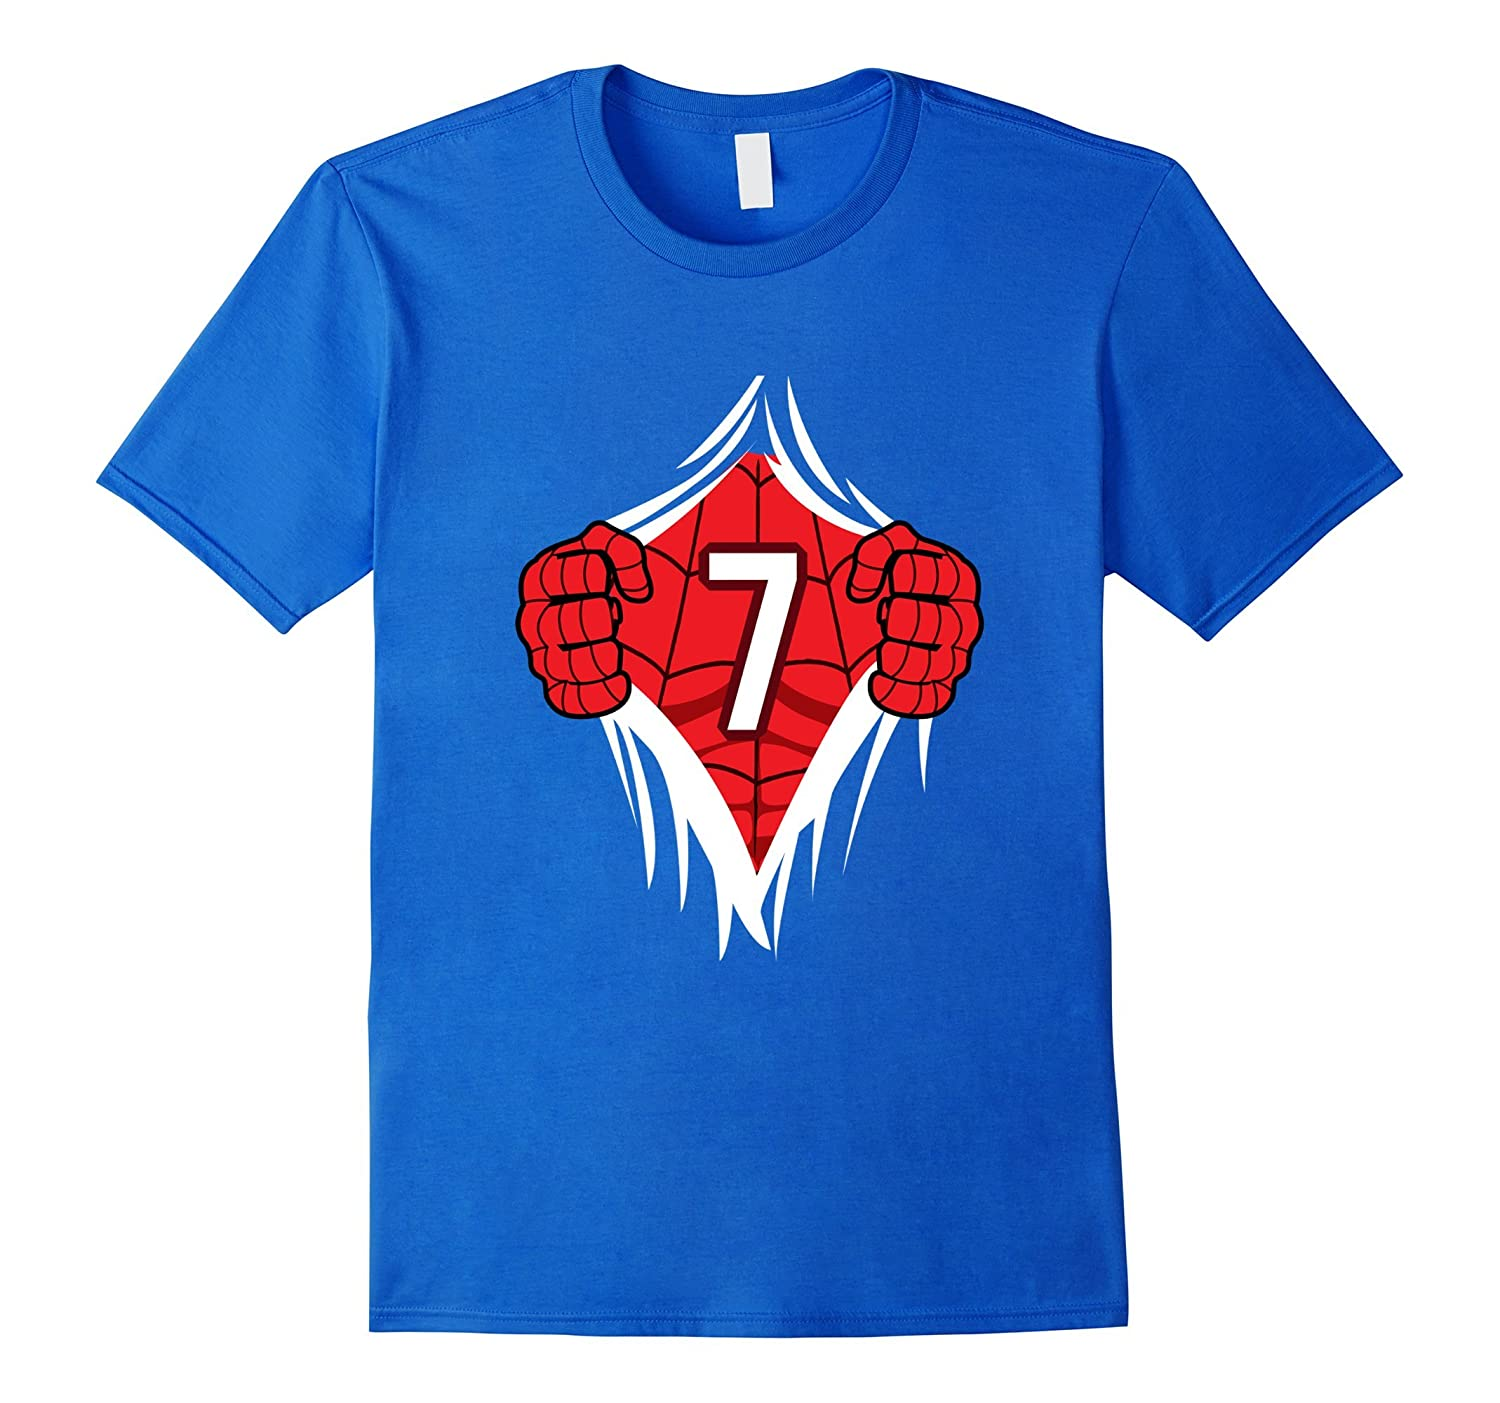 Superhero Birthday Shirt 7 Year Old Tshirt Girls Boys Comic CL